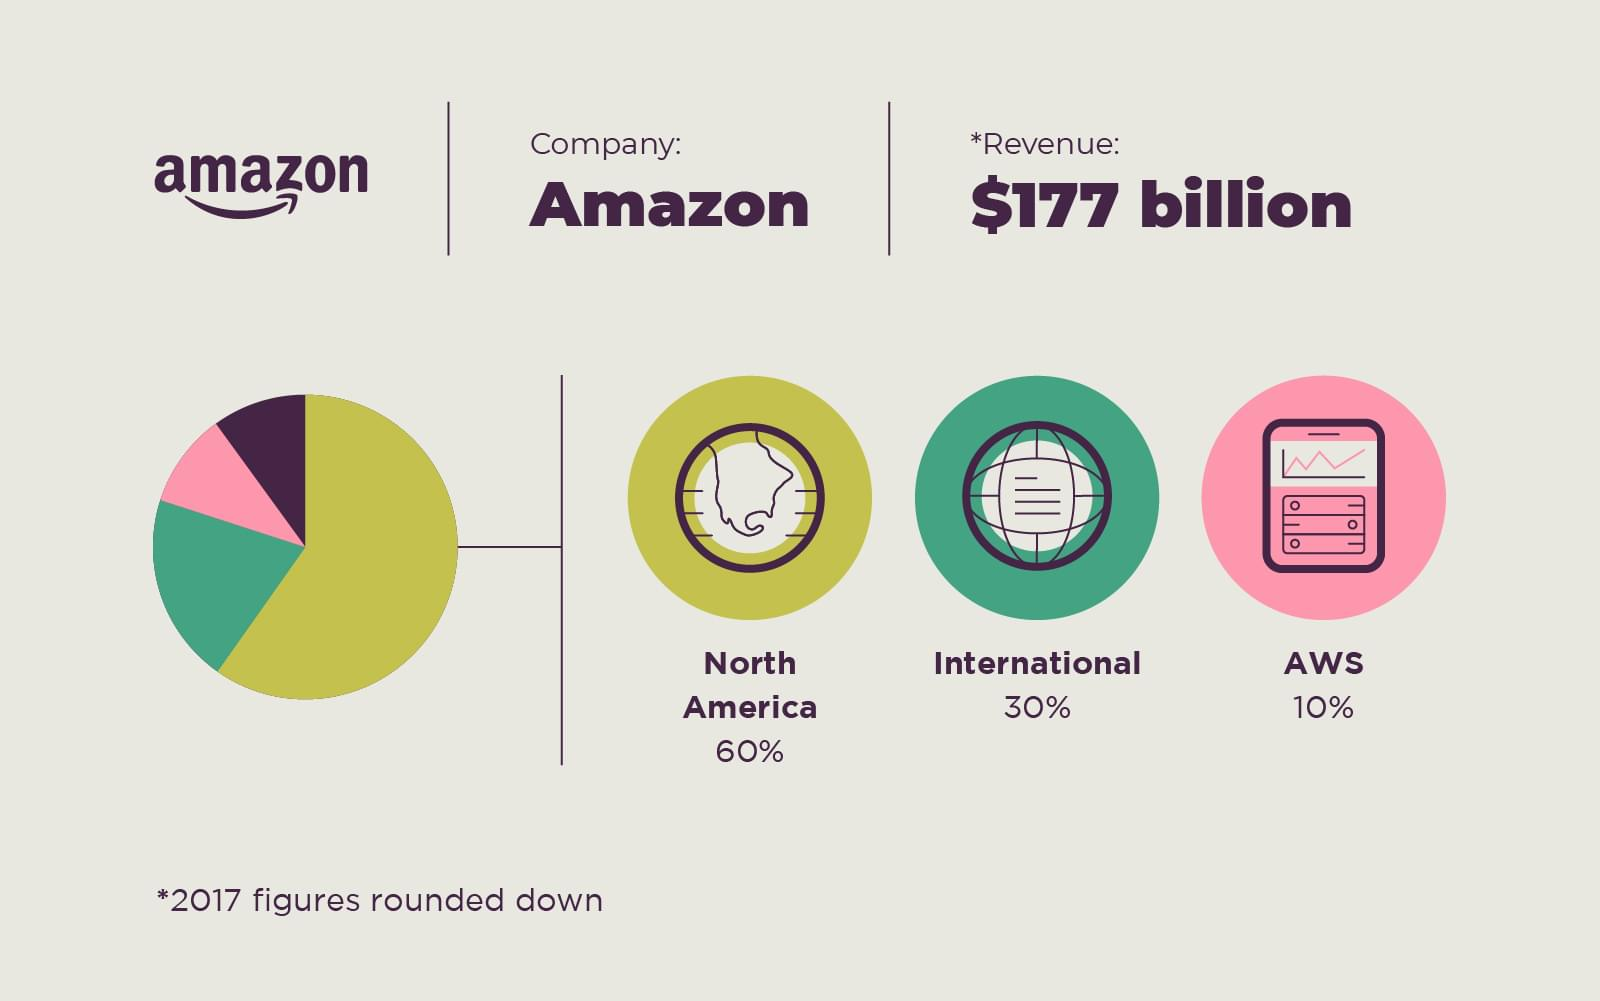 Amazon revenue breakdown by market and Amazon Web Services